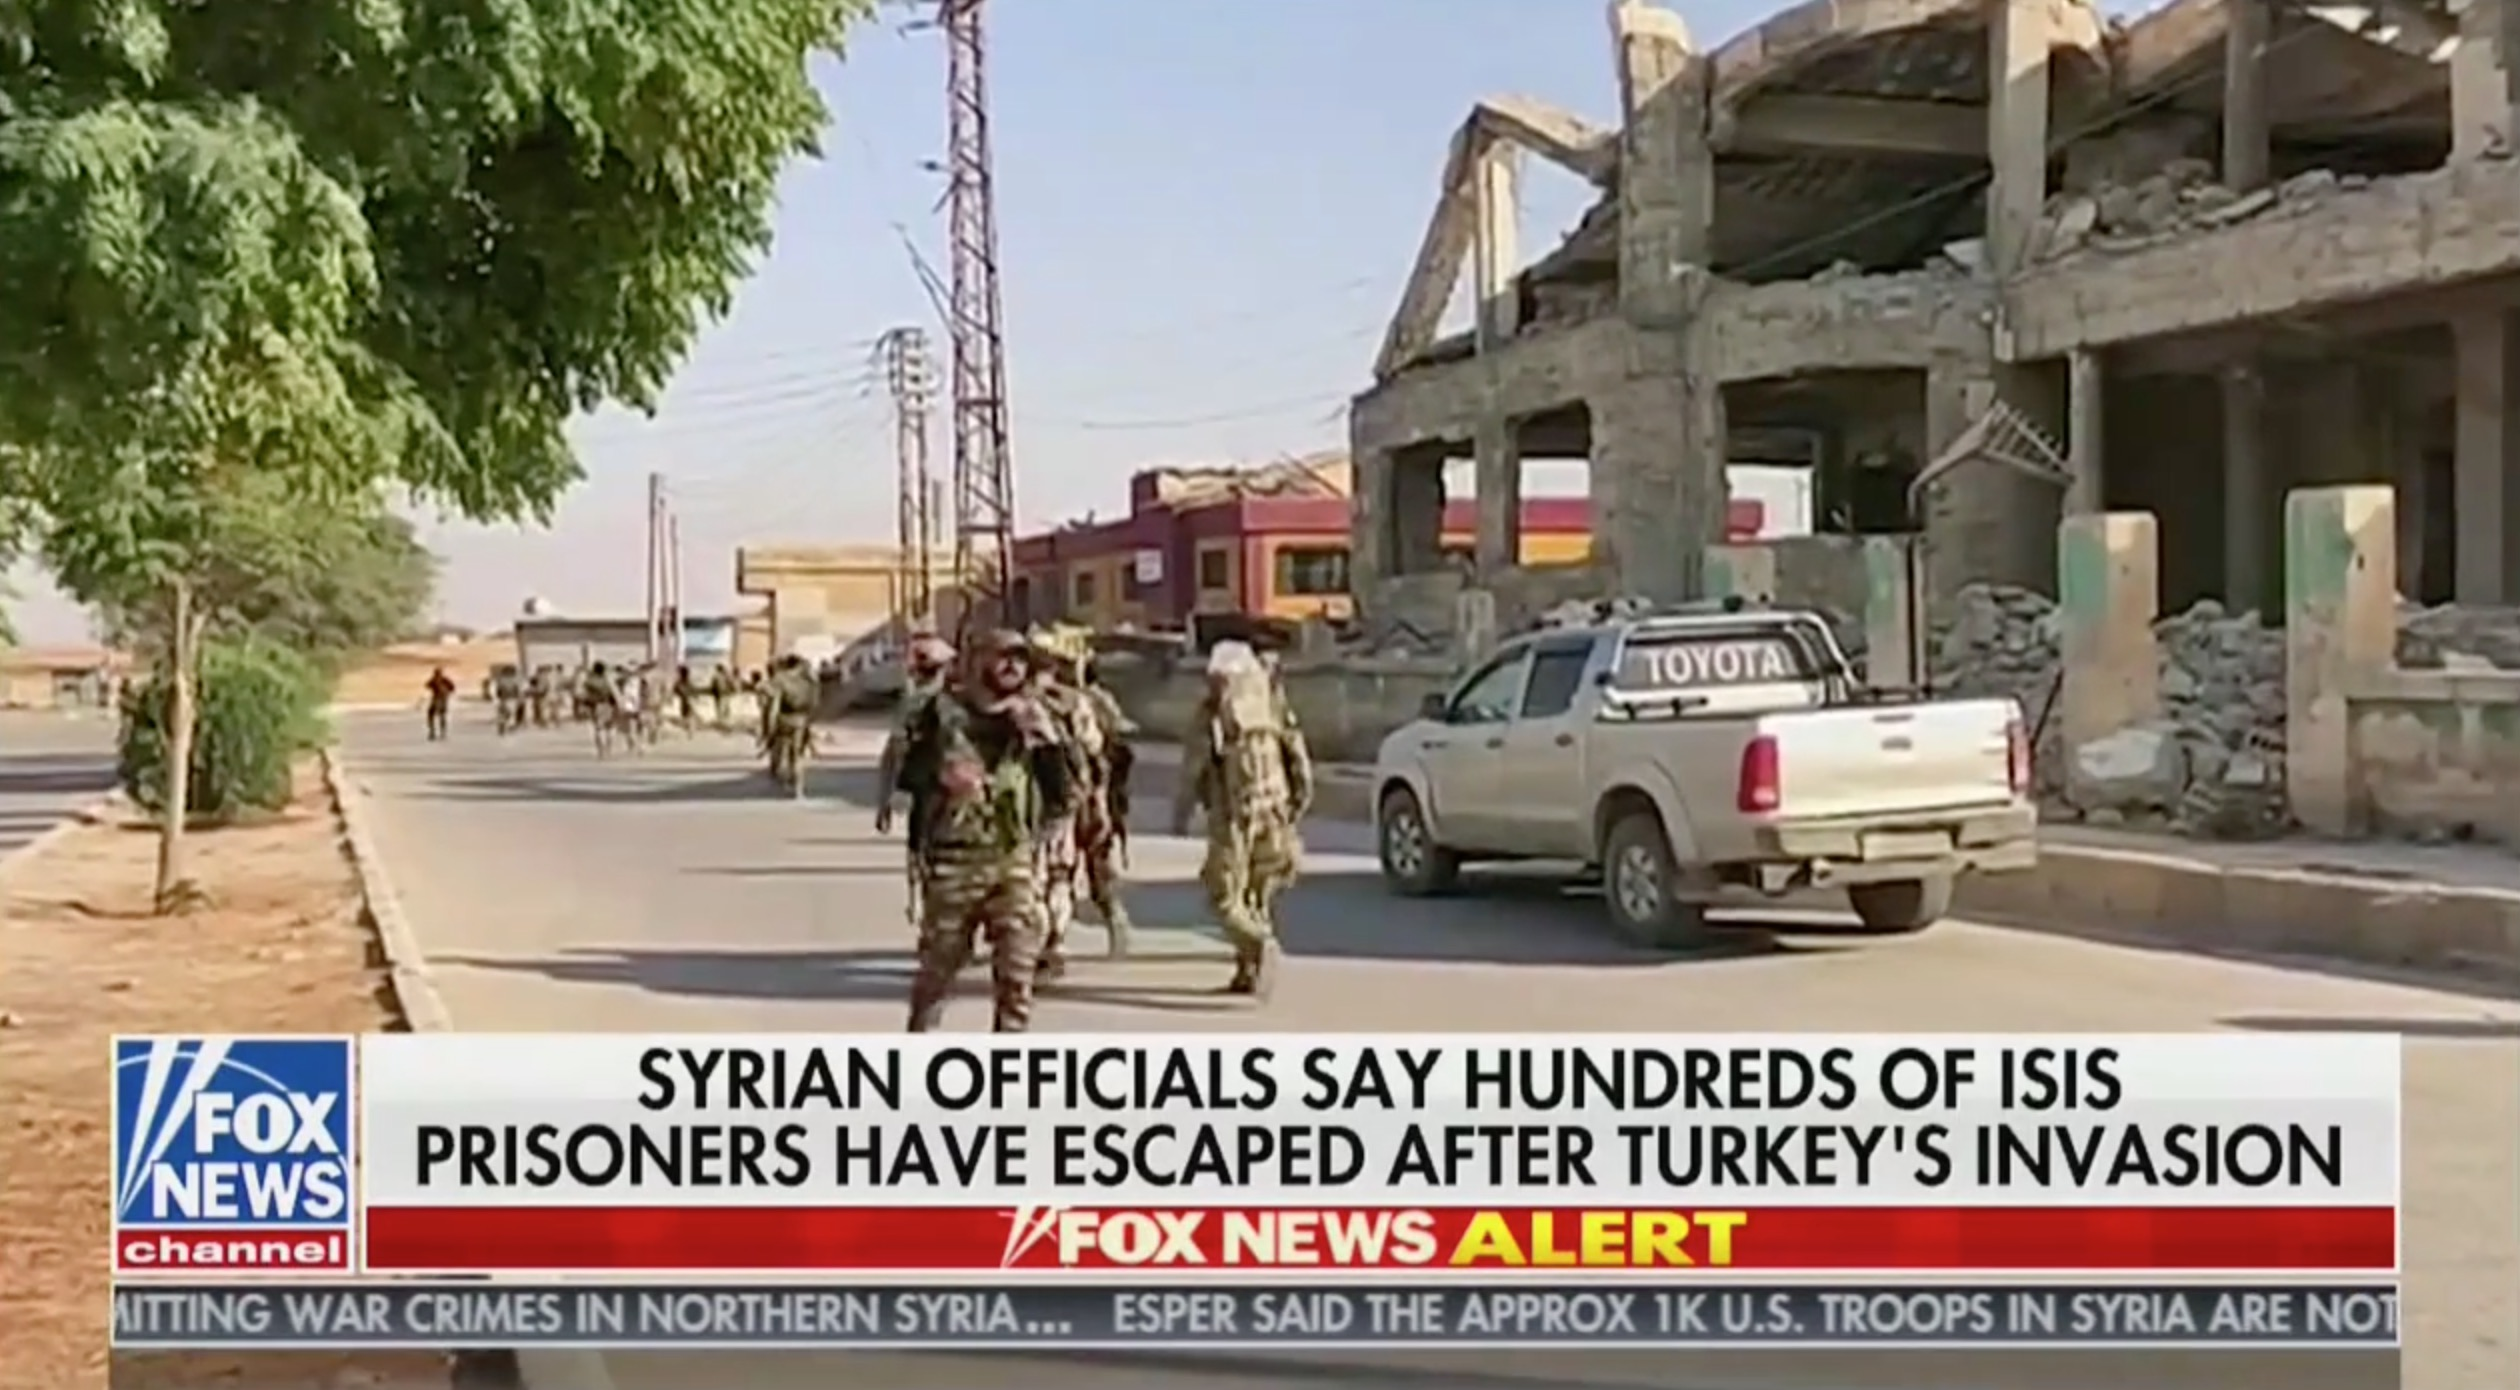 Fox News Reporter Delivers Horrific Report on Syria: While Trump Tweets About Sanctions, 'There's Evidence Today of War Crimes'